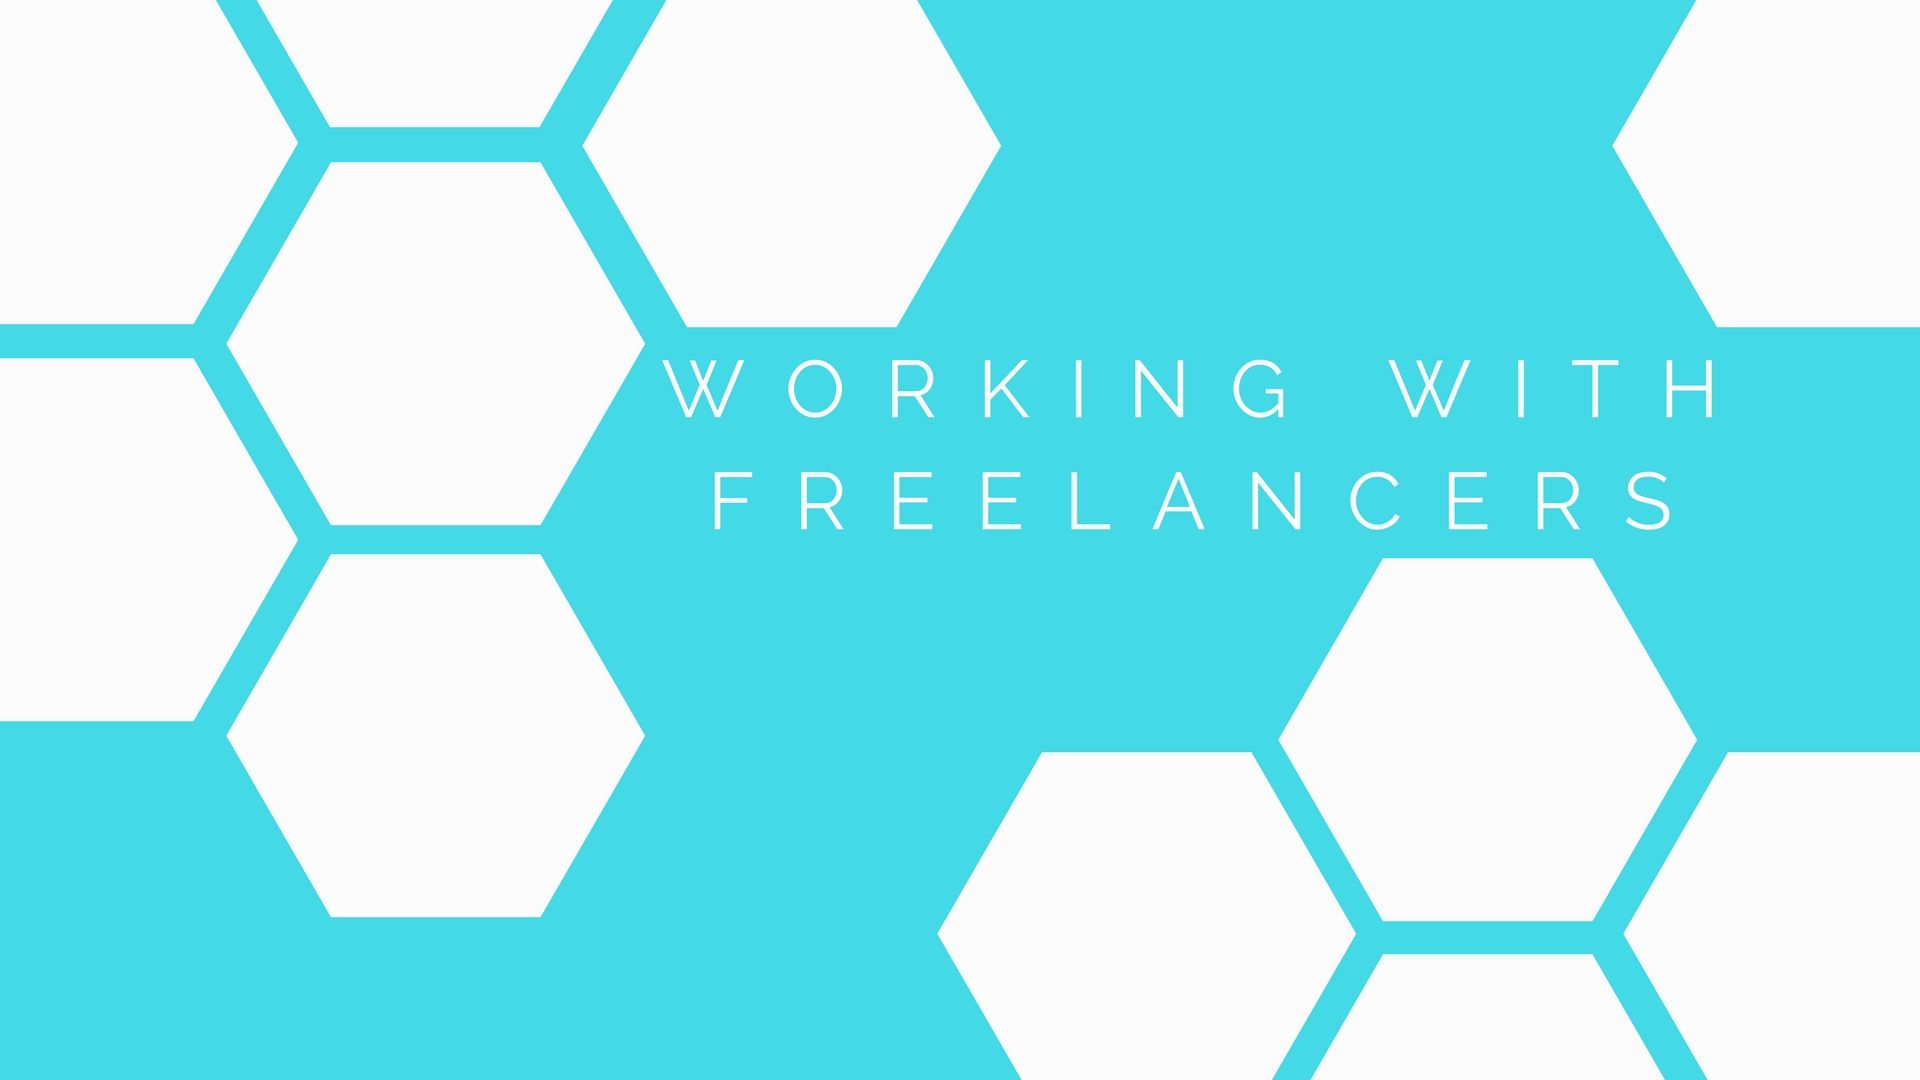 Working with Freelancers